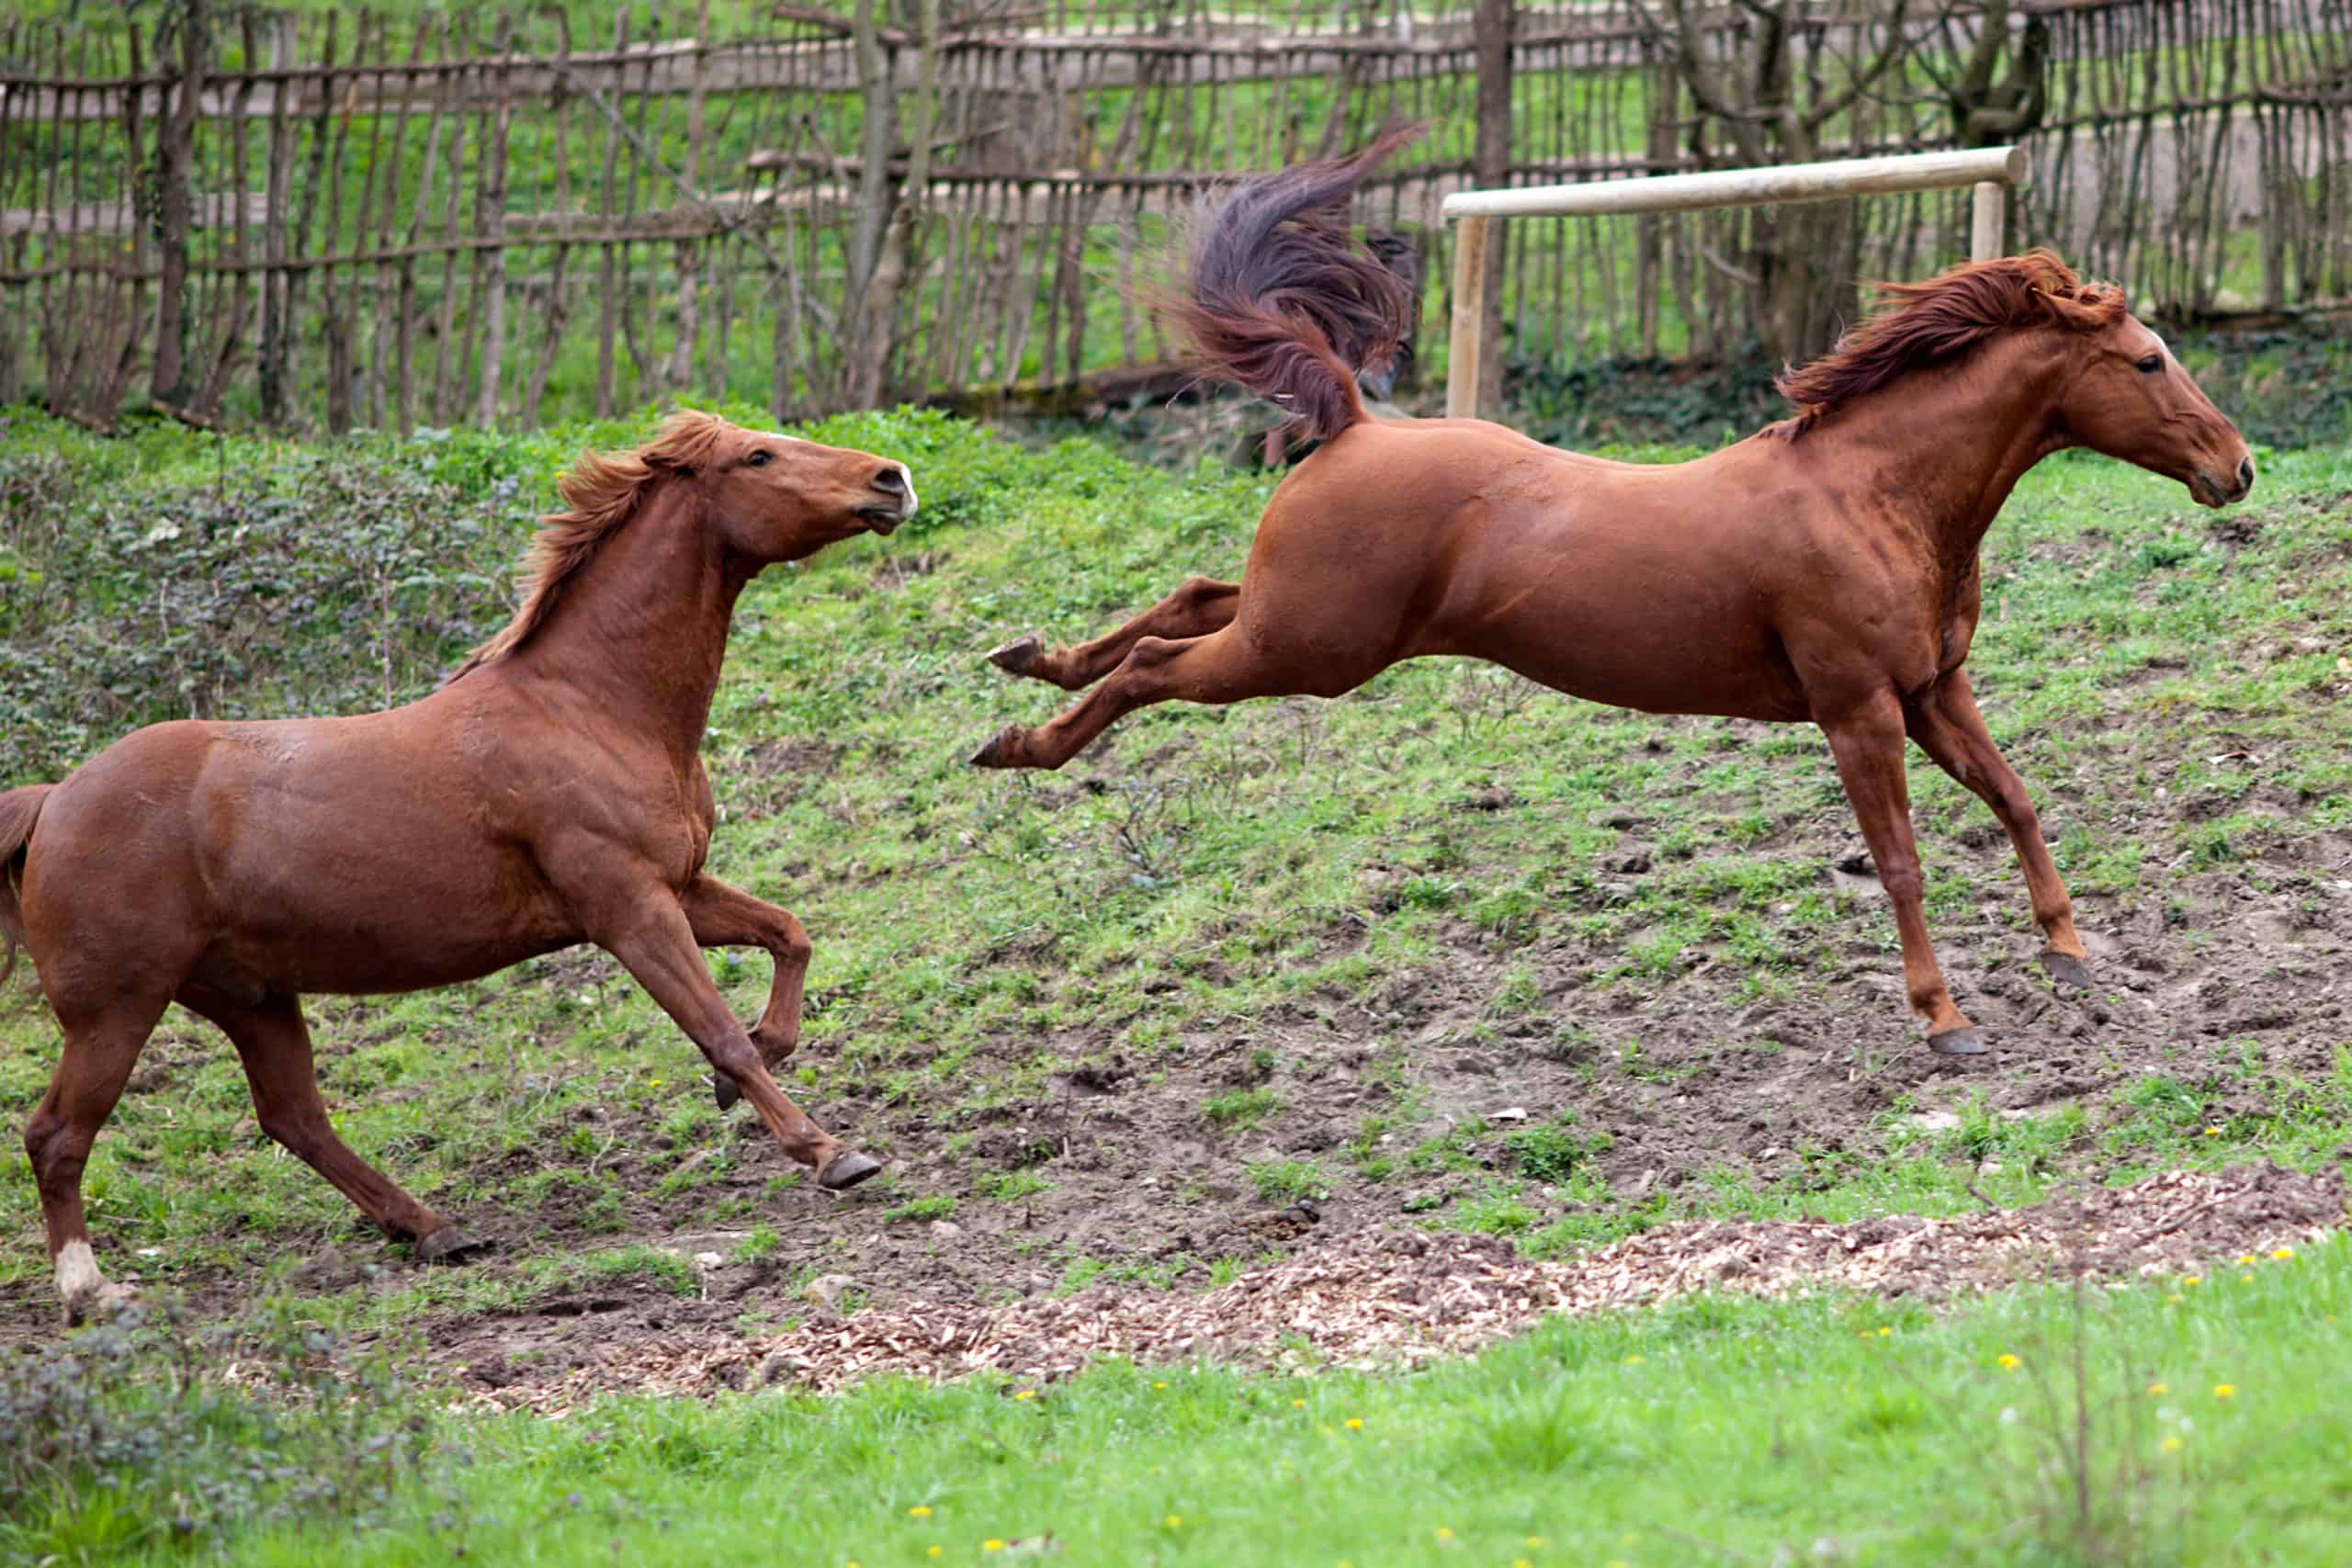 Horse buck and kick out